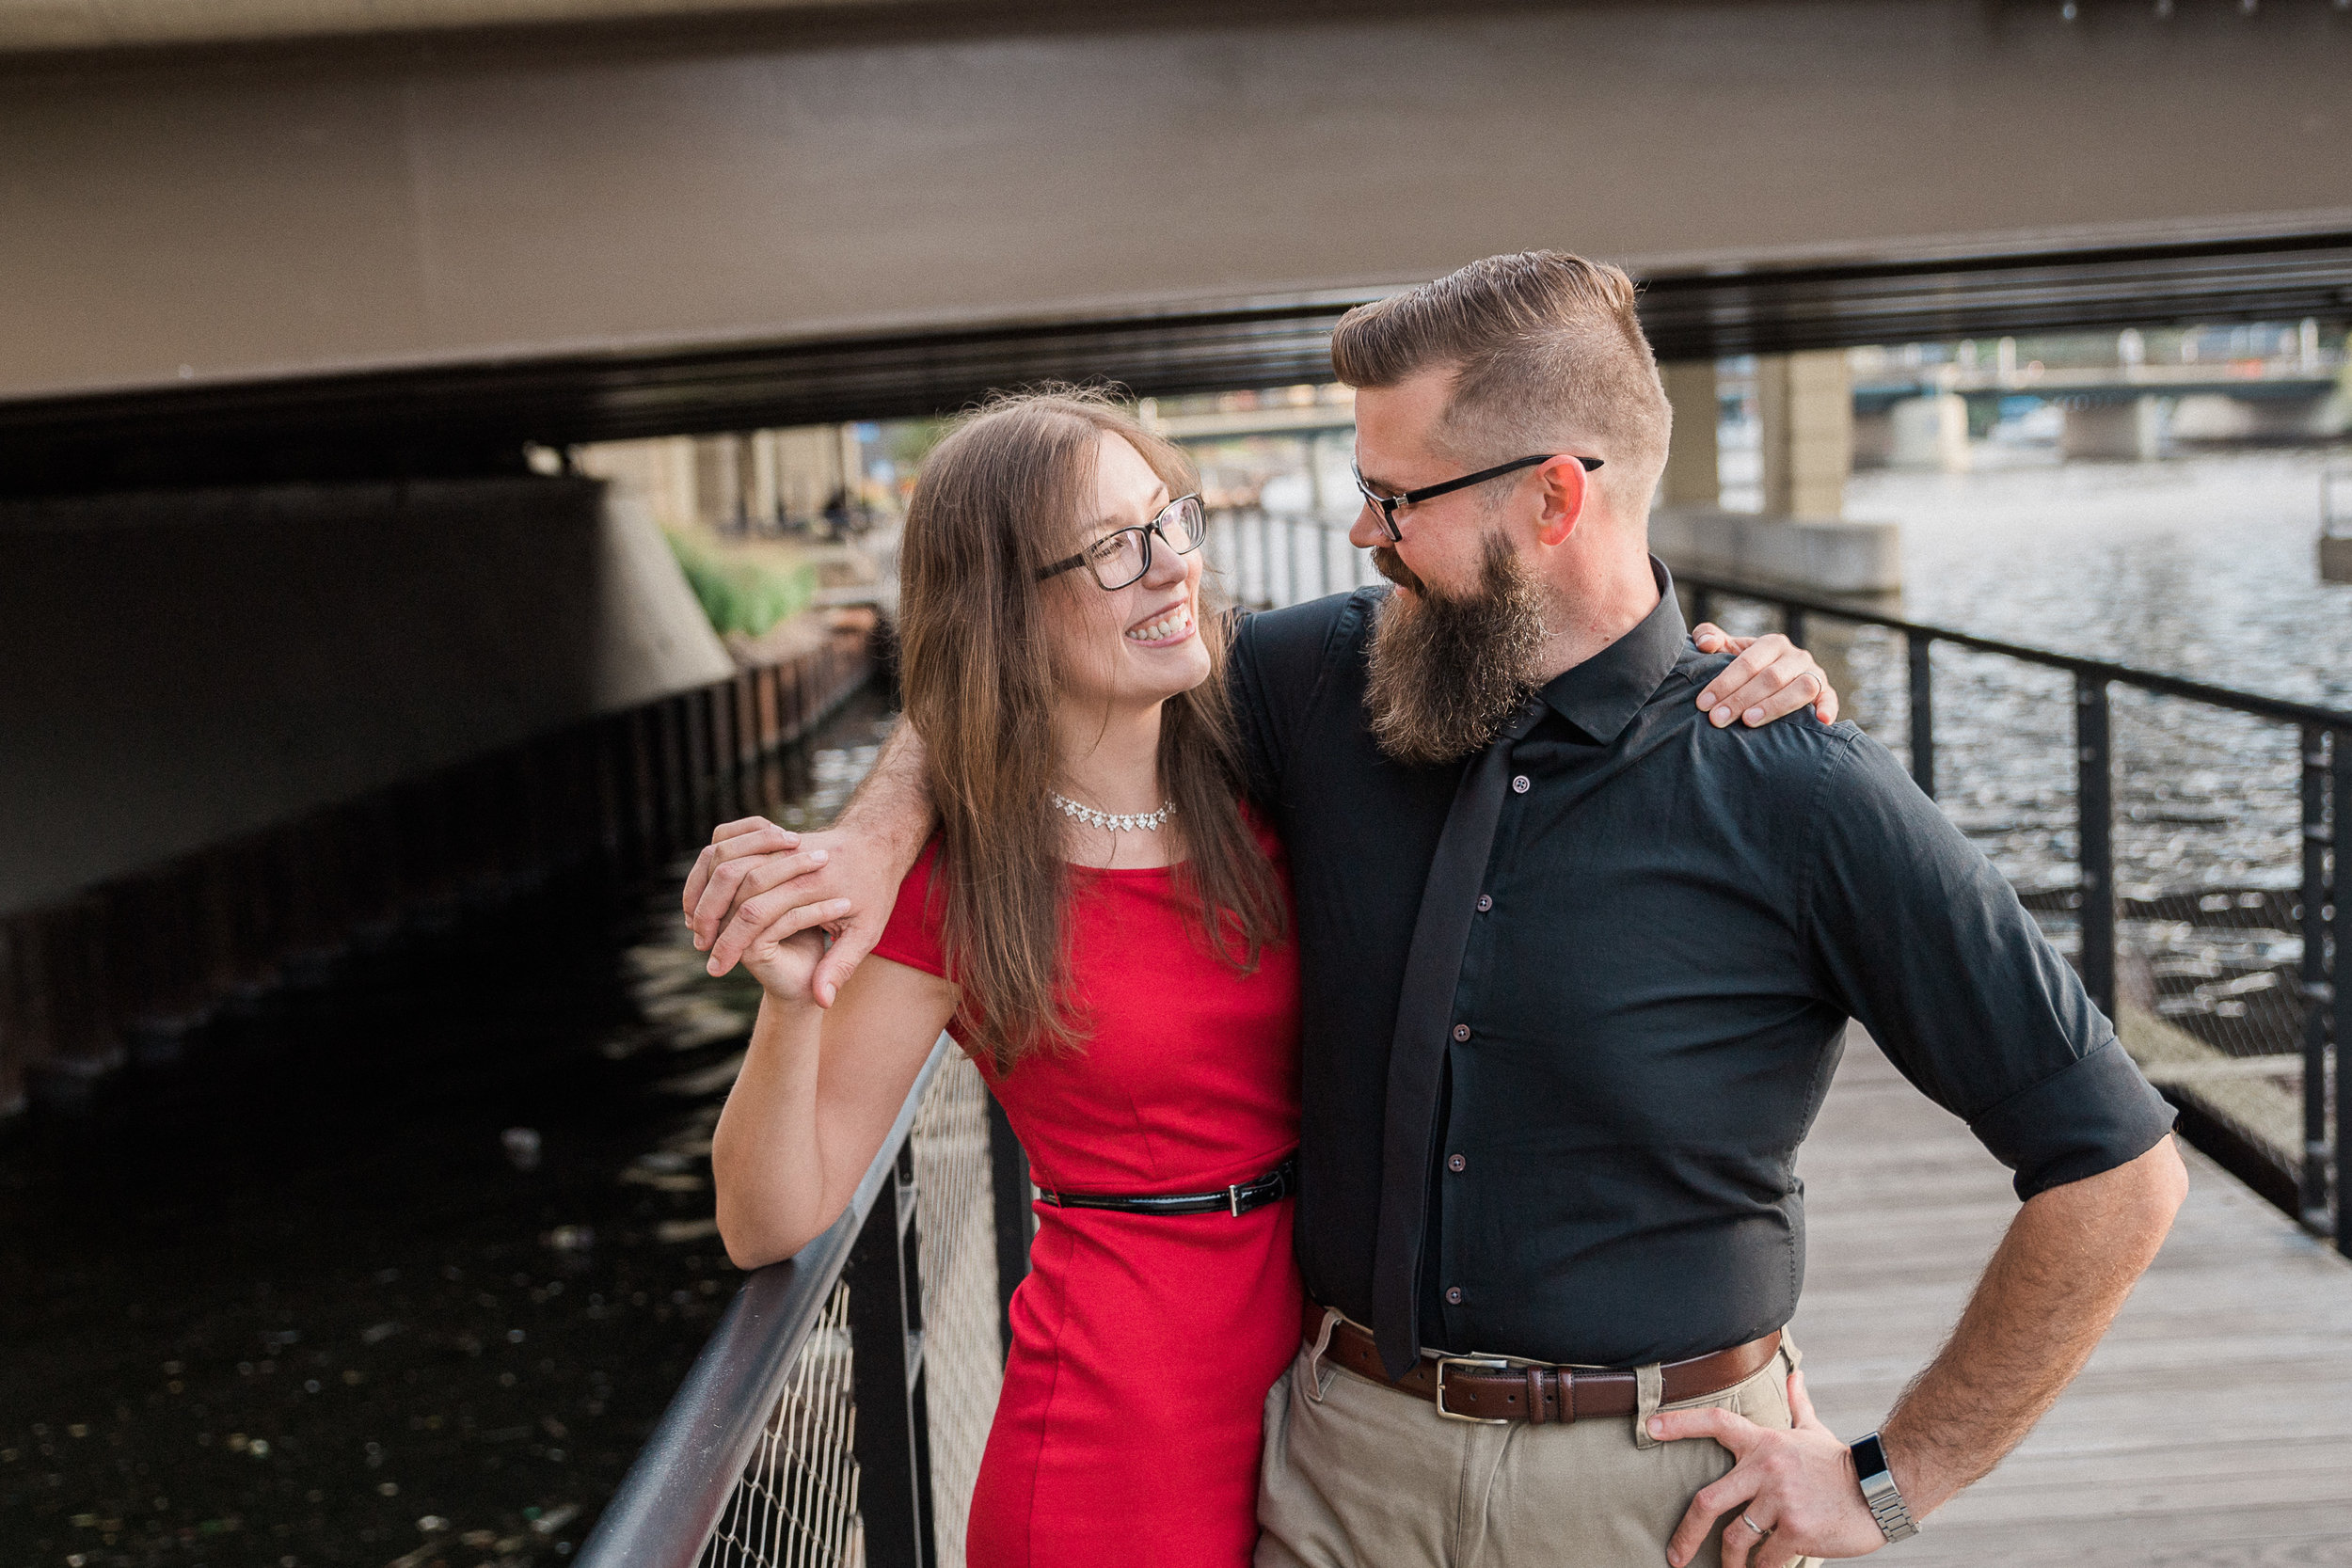 Engaged couple wraps arms around each other's shoulder at the Milwaukee Riverwalk.